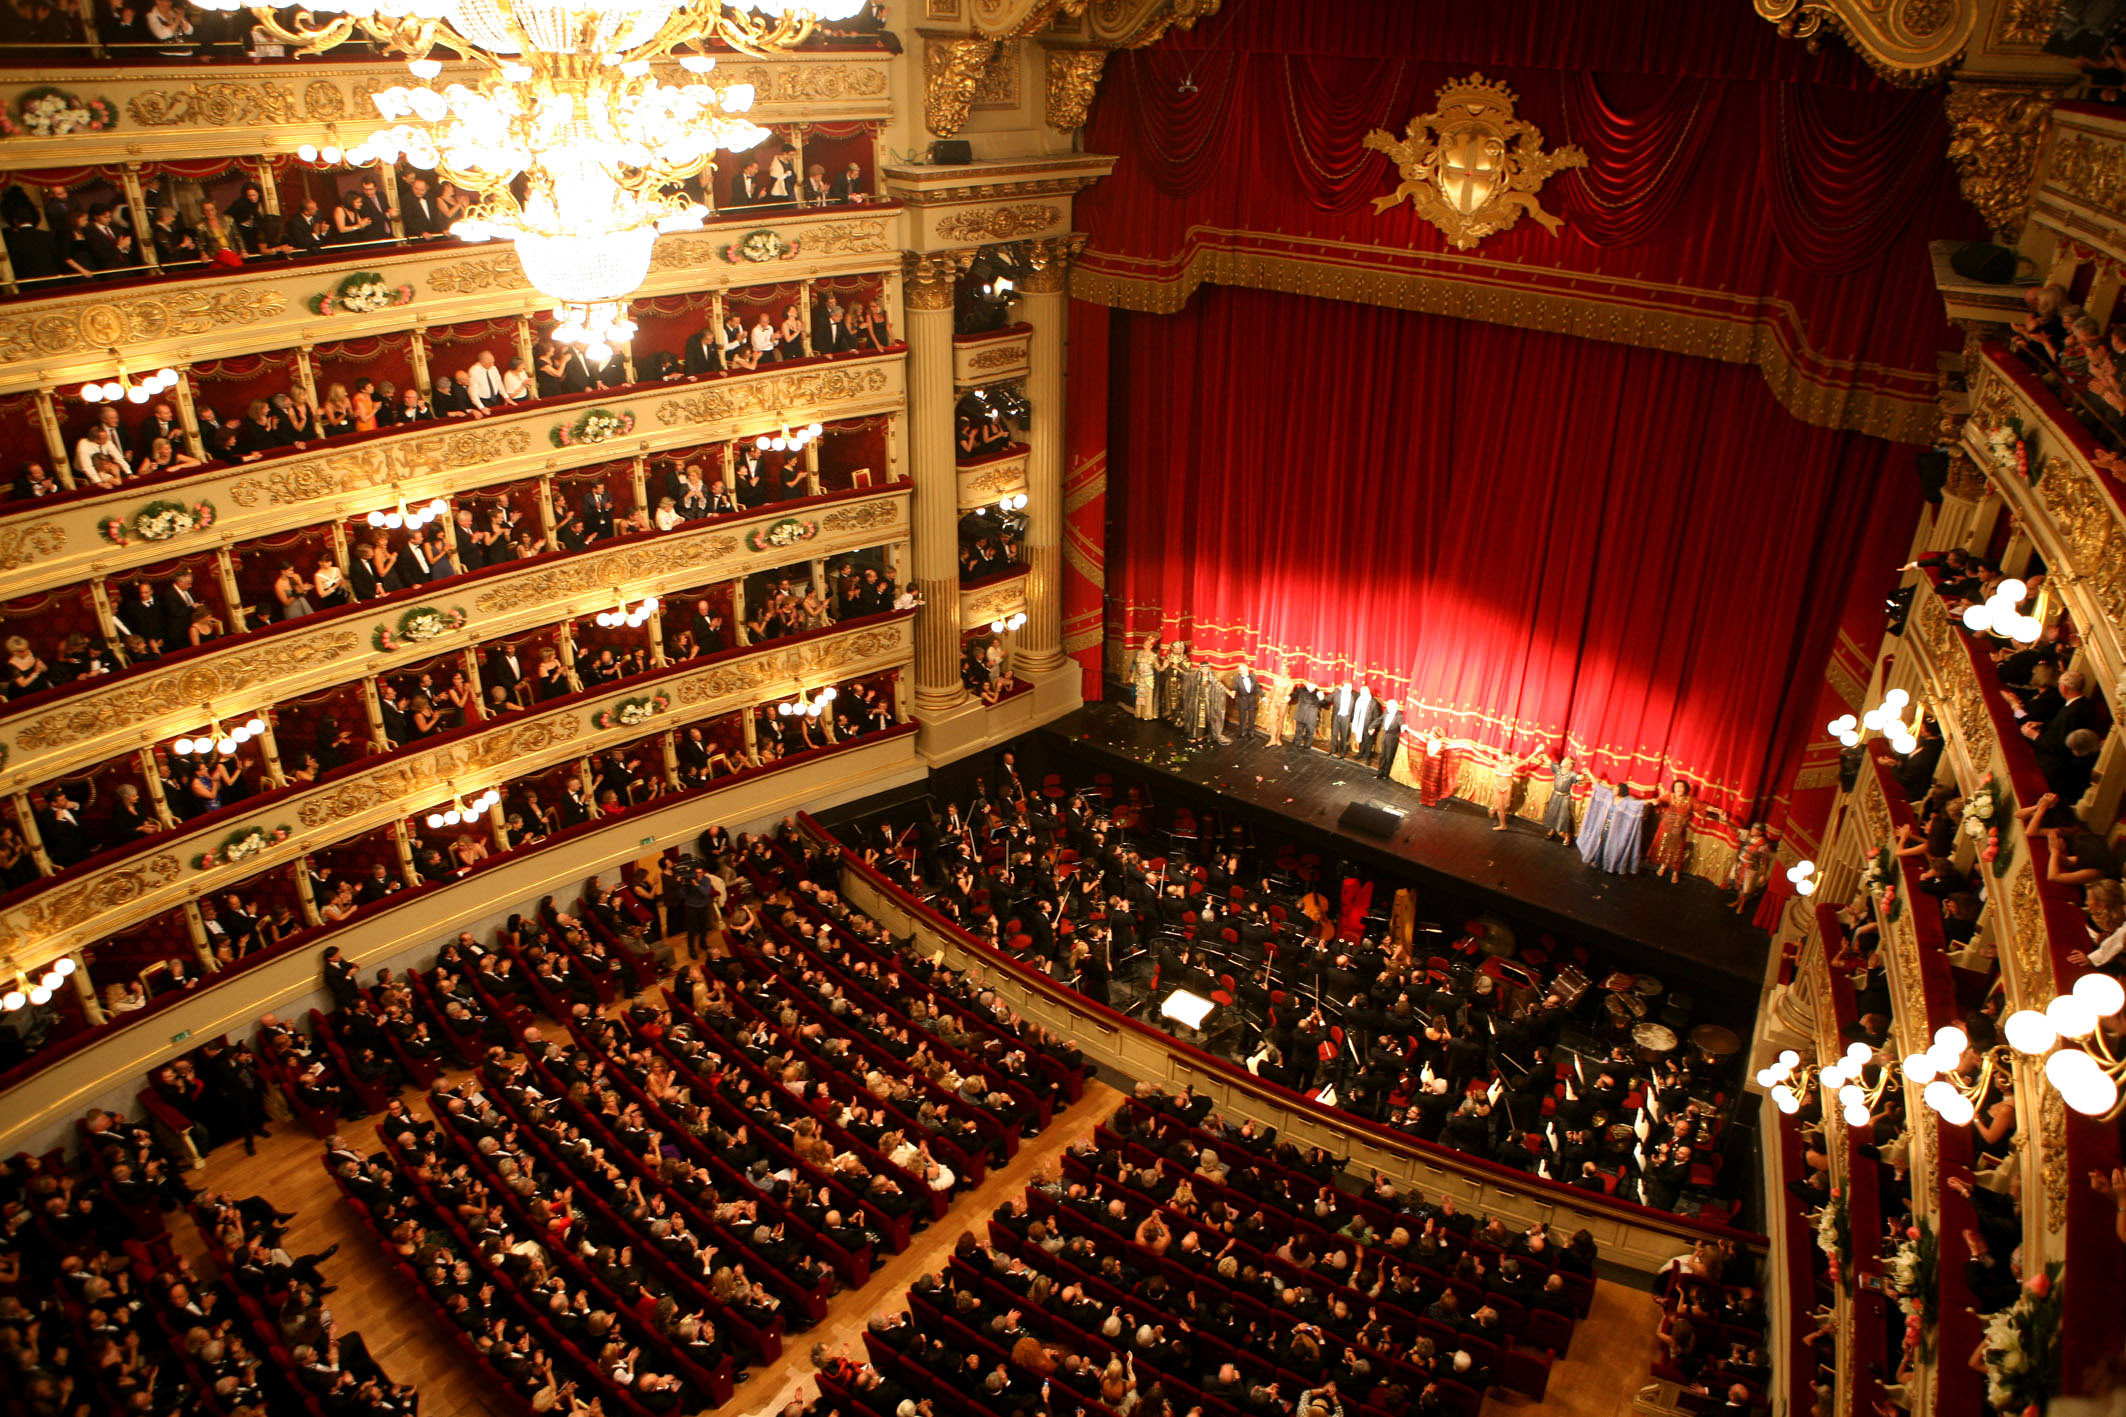 """** FILE **In this photo released by Teatro alla Scala, the cast of Giuseppe Verdi's """"Aida"""" acknowledges the applause at the end of the opera at La Scala theater, in Milan, Italy, Thursday, Dec. 7, 2006. La Scala canceled a long-awaited performance of Verdi's ''Requiem'' conducted by Daniel Barenboim due to a strike by the opera house's 800 employees. The ''Requiem'' performance scheduled for Friday, Nov. 9, 2007 was to cap a year of commemorations marking the 50th anniversary of the death of Arturo Toscanini and mark one of Barenboim's first appearances in his new role as La Scala's principal guest conductor, was called off. (AP Photo/Marco Brescia/Teatro alla Scala) / SCANPIX Code: 436"""